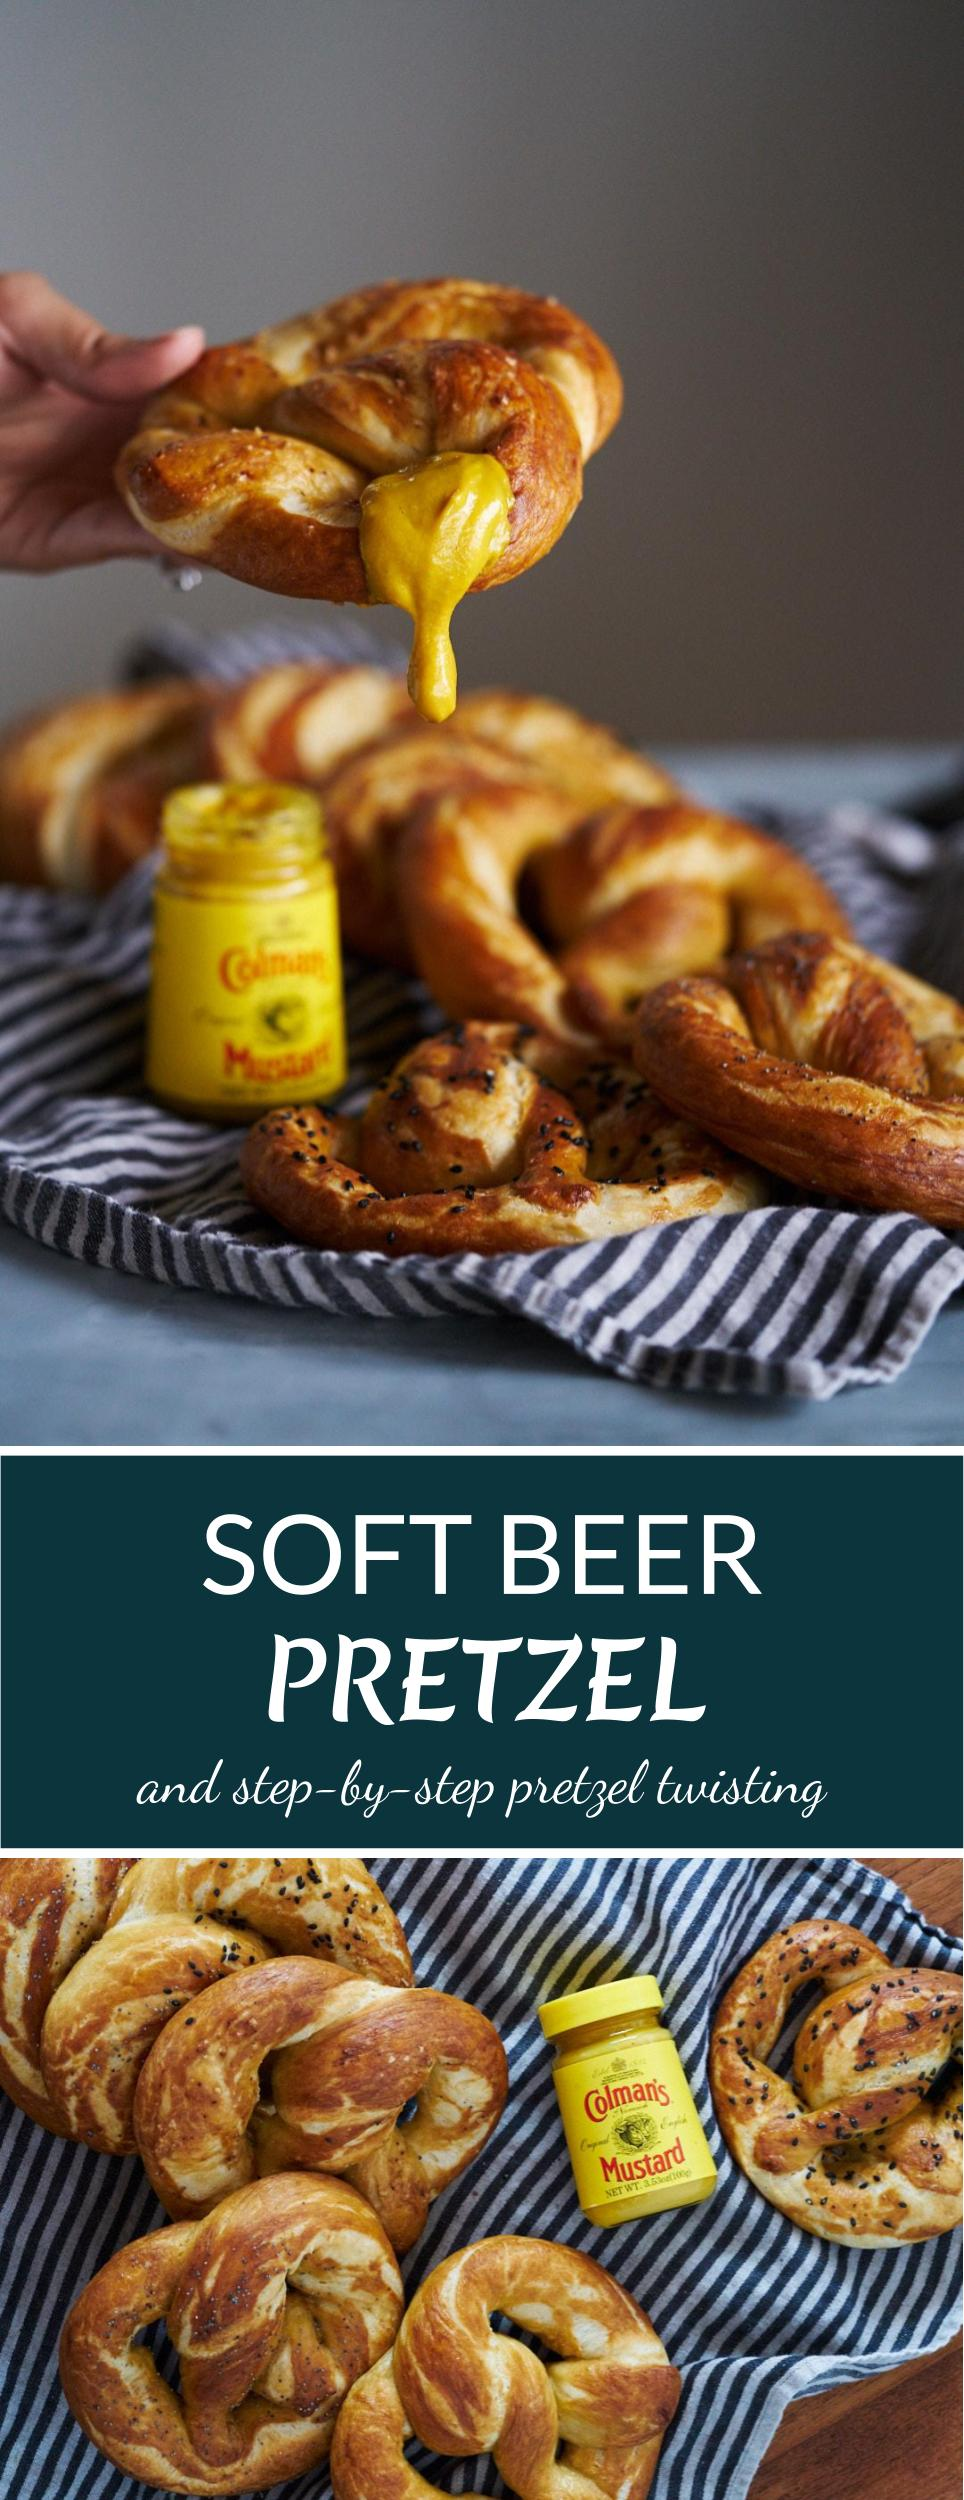 Soft Beer Pretzel with Mustard & All the Toppings! | Proportional Plate